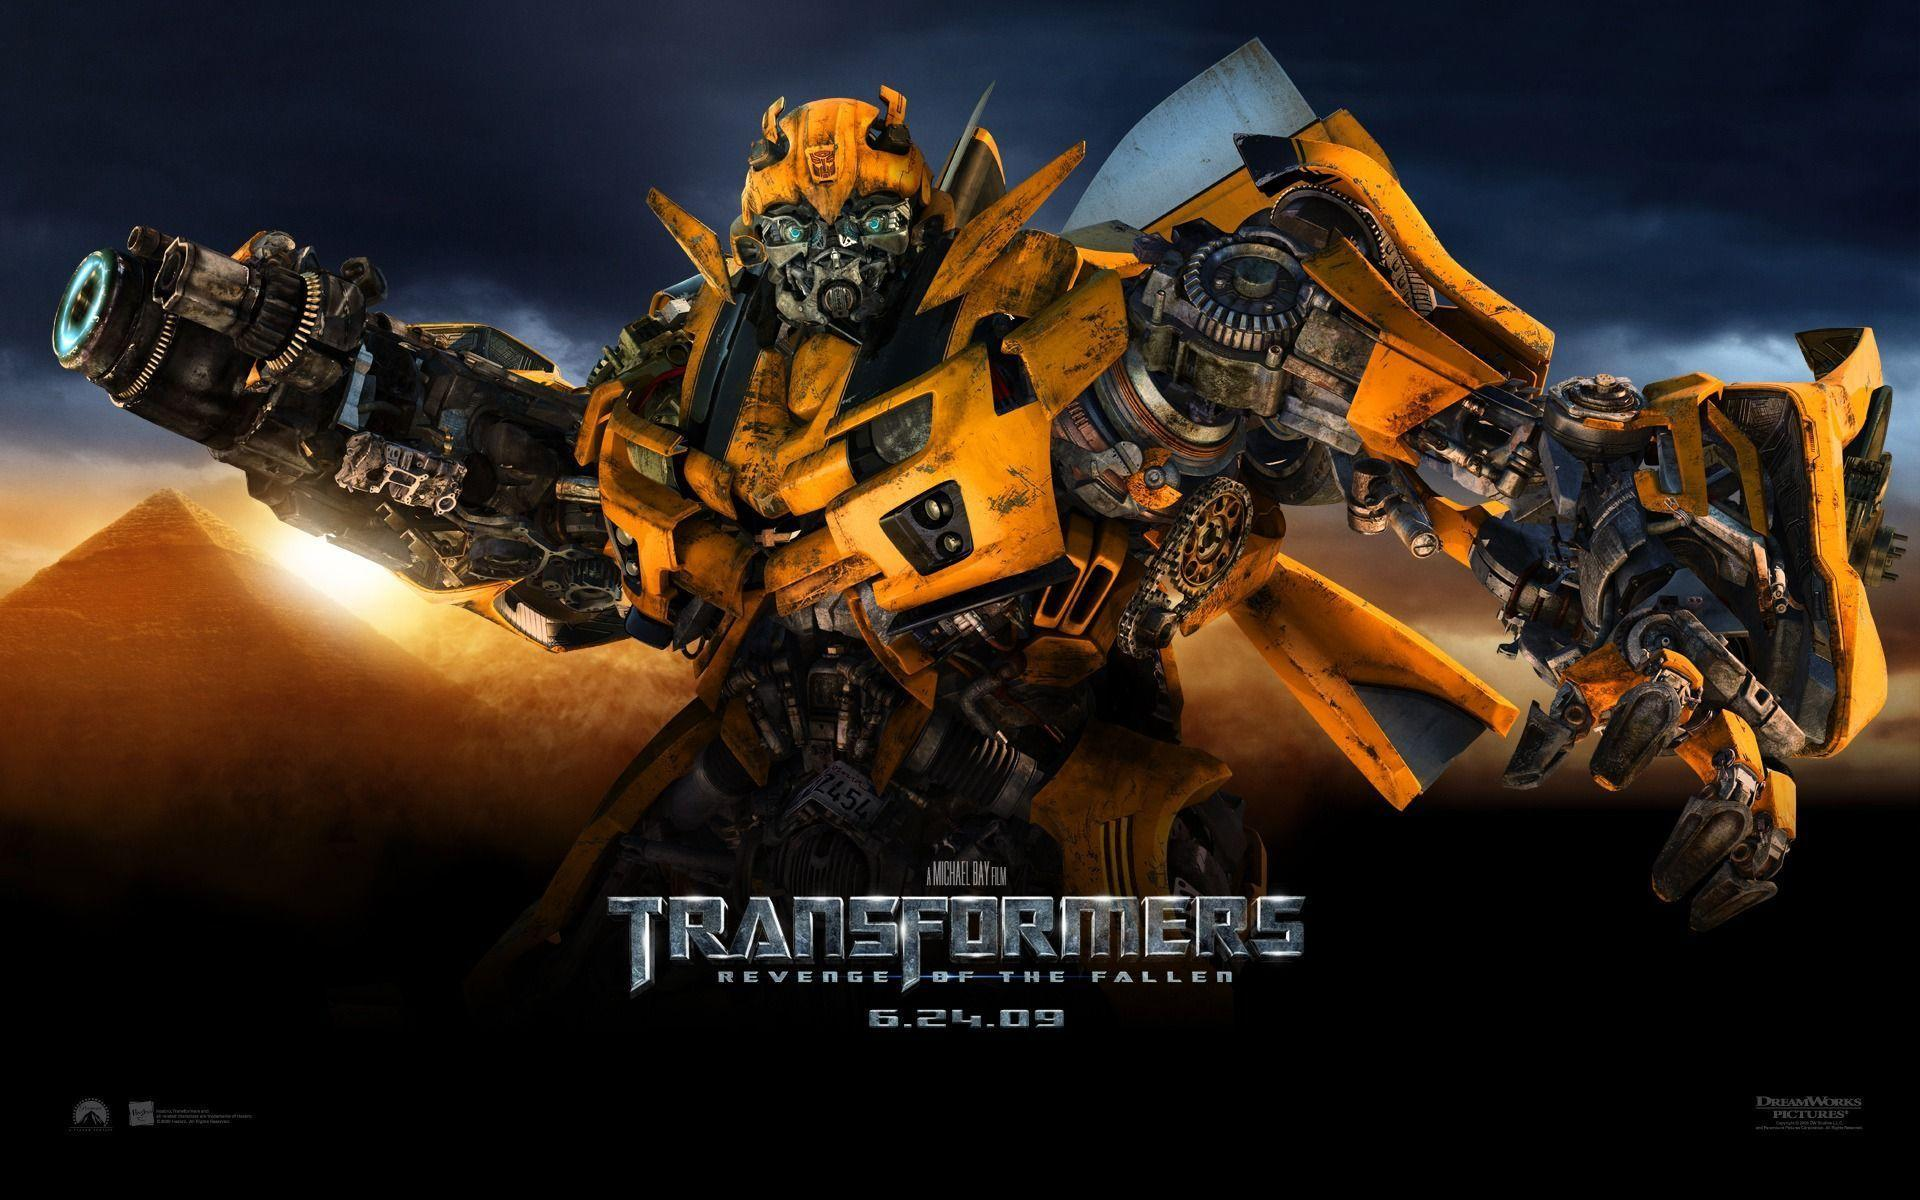 Transformers Wallpapers Bumblebee Wallpaper Cave HD Wallpapers Download Free Images Wallpaper [1000image.com]